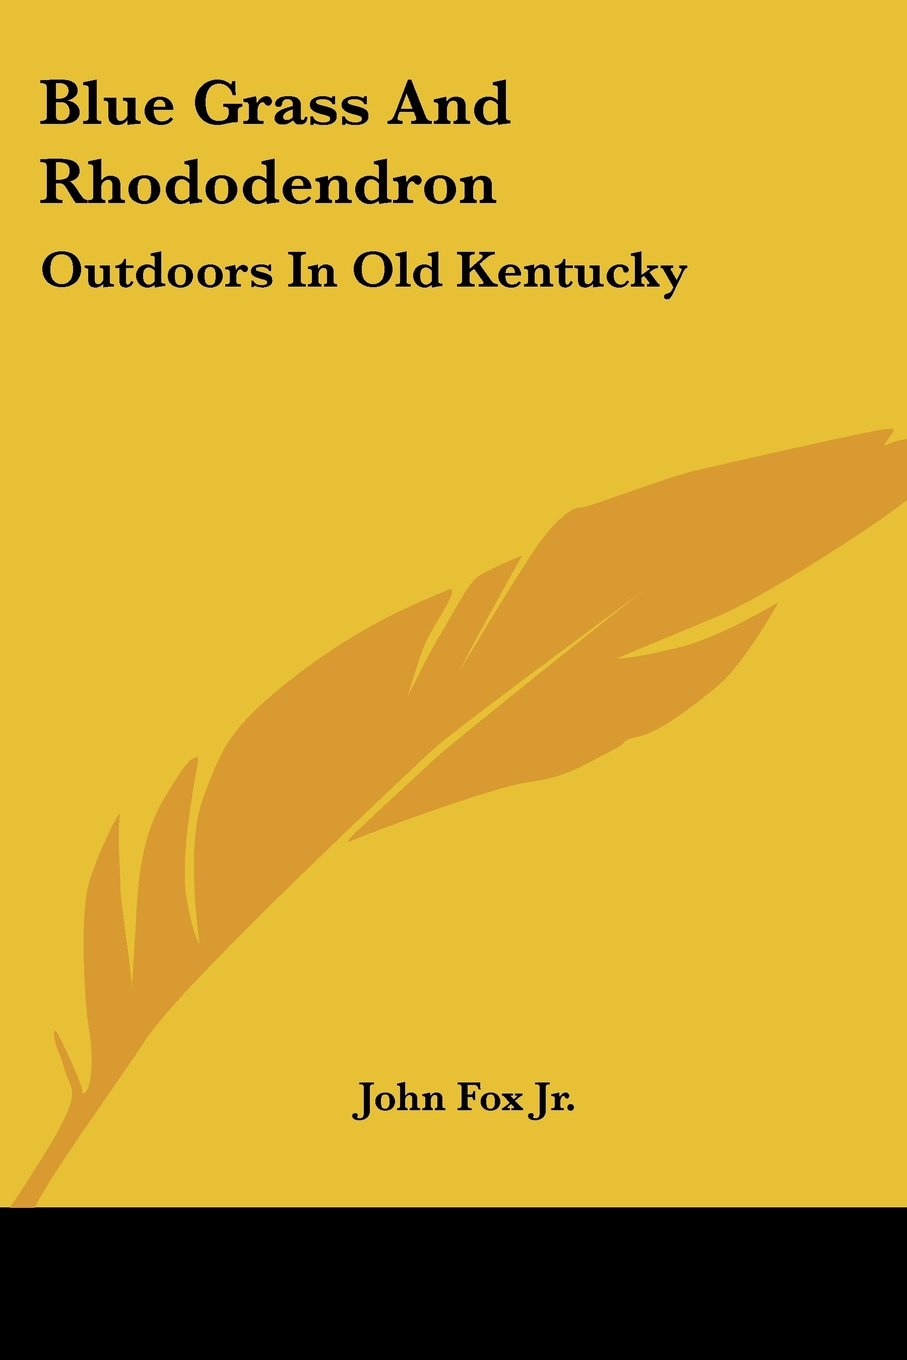 Download Blue Grass And Rhododendron: Outdoors In Old Kentucky ebook